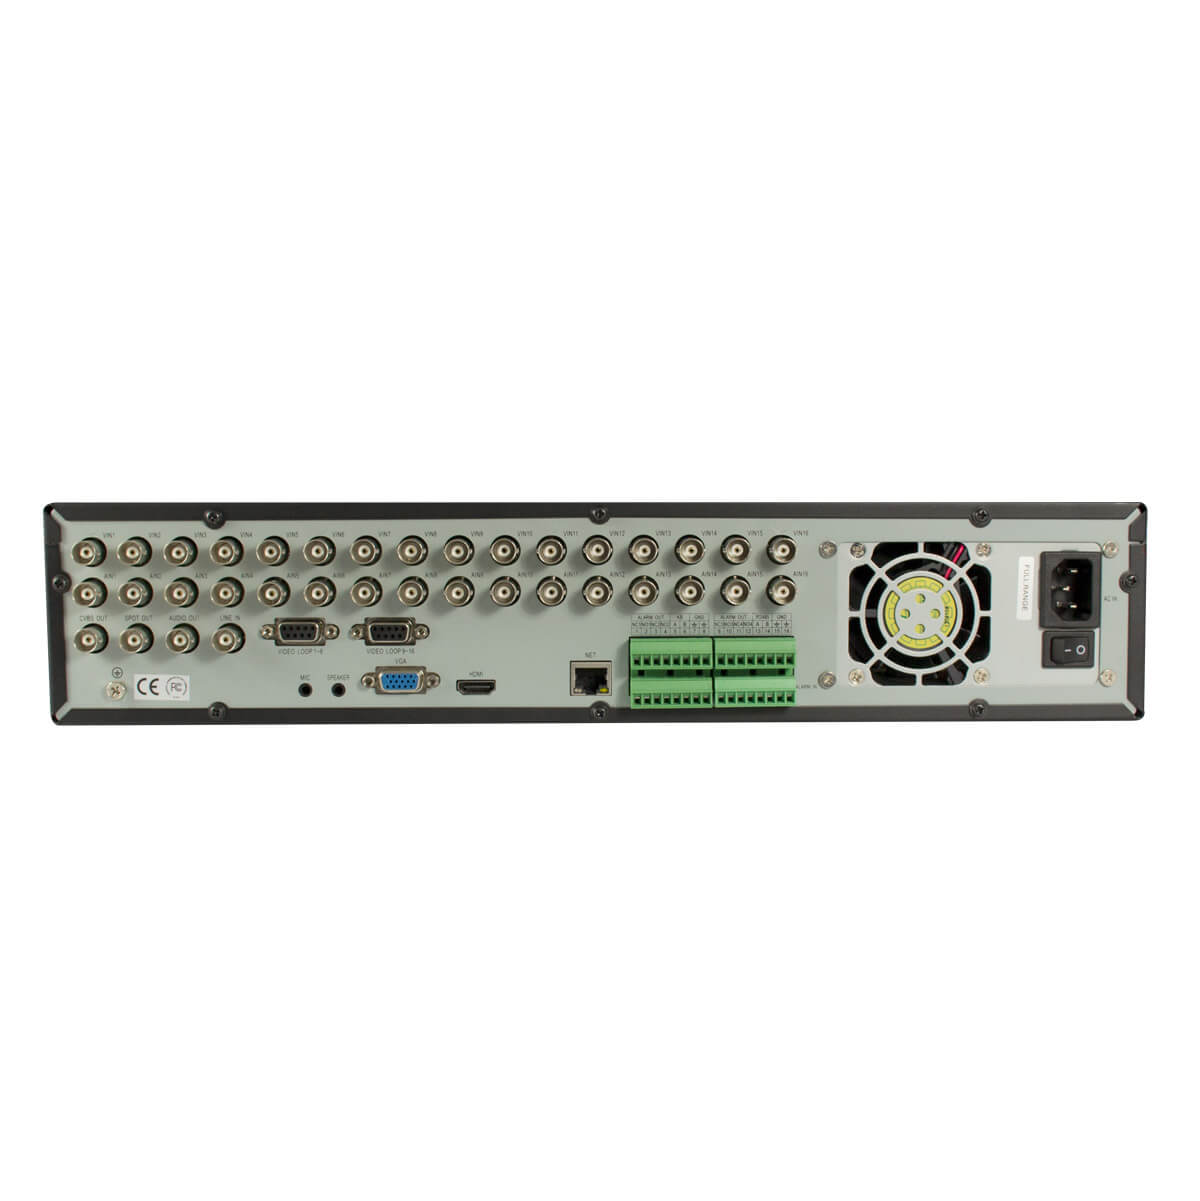 DVR 8 Canales, H264/G711A, VGA/HDMI/CVBS, Audio 8ch-in/1ch-out, D1/CIF